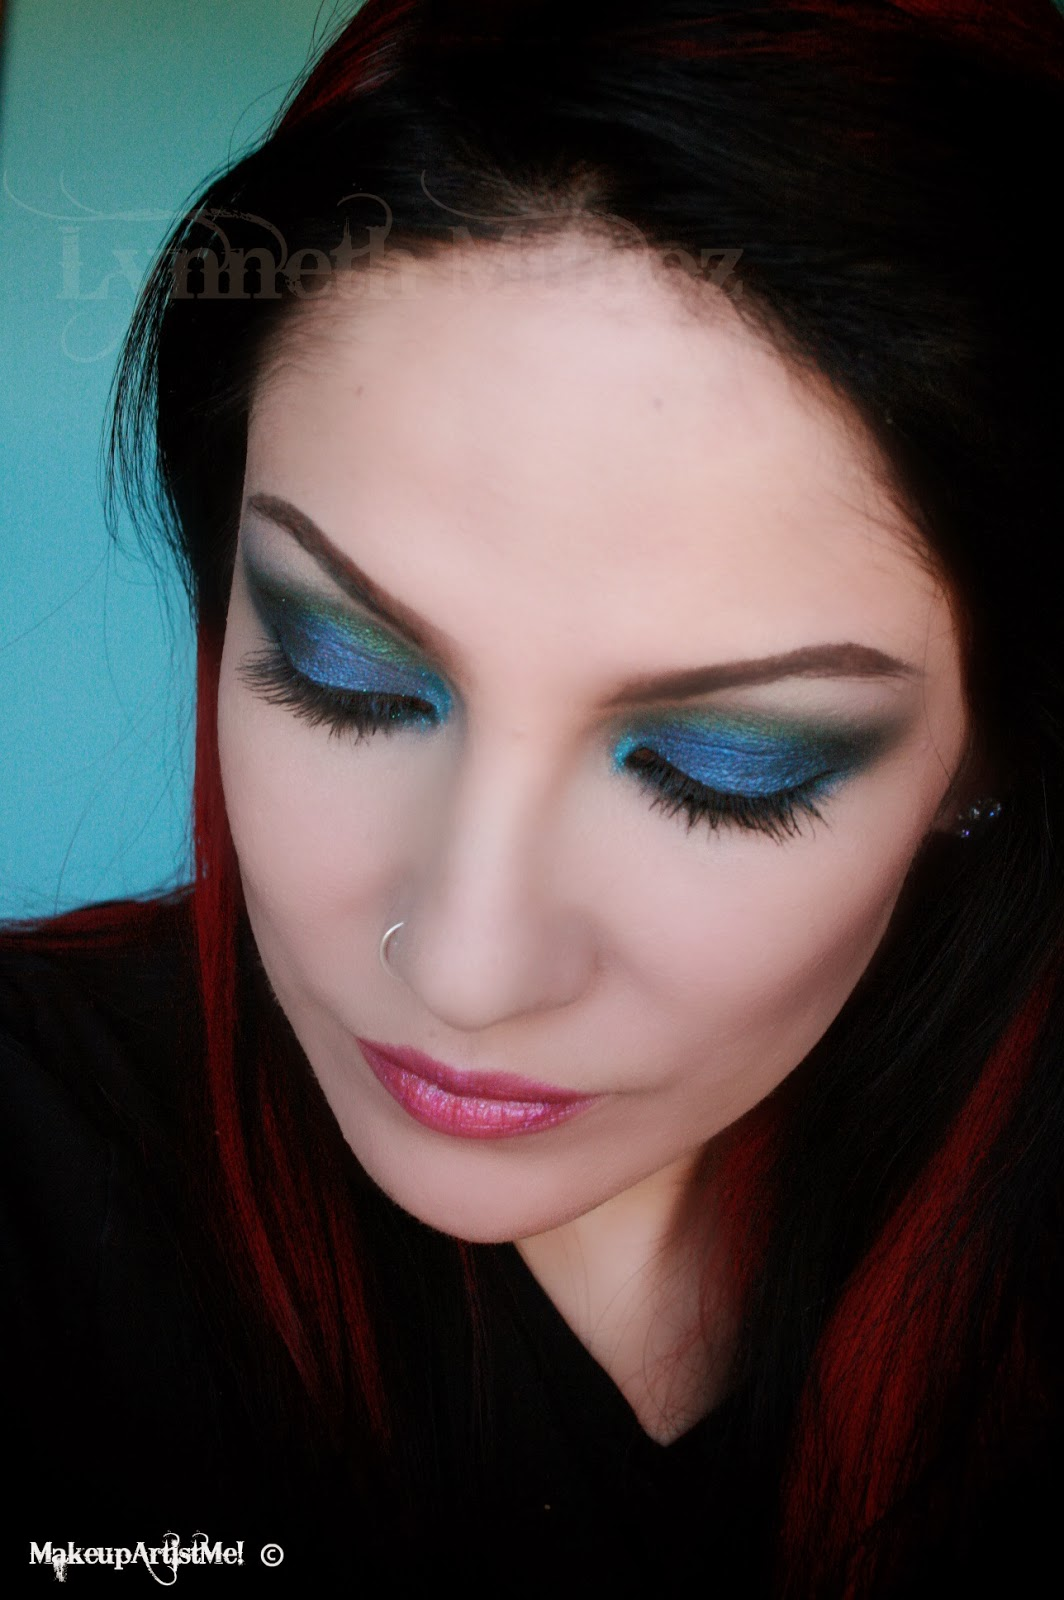 Make-up Artist Me!: Peacock Stare